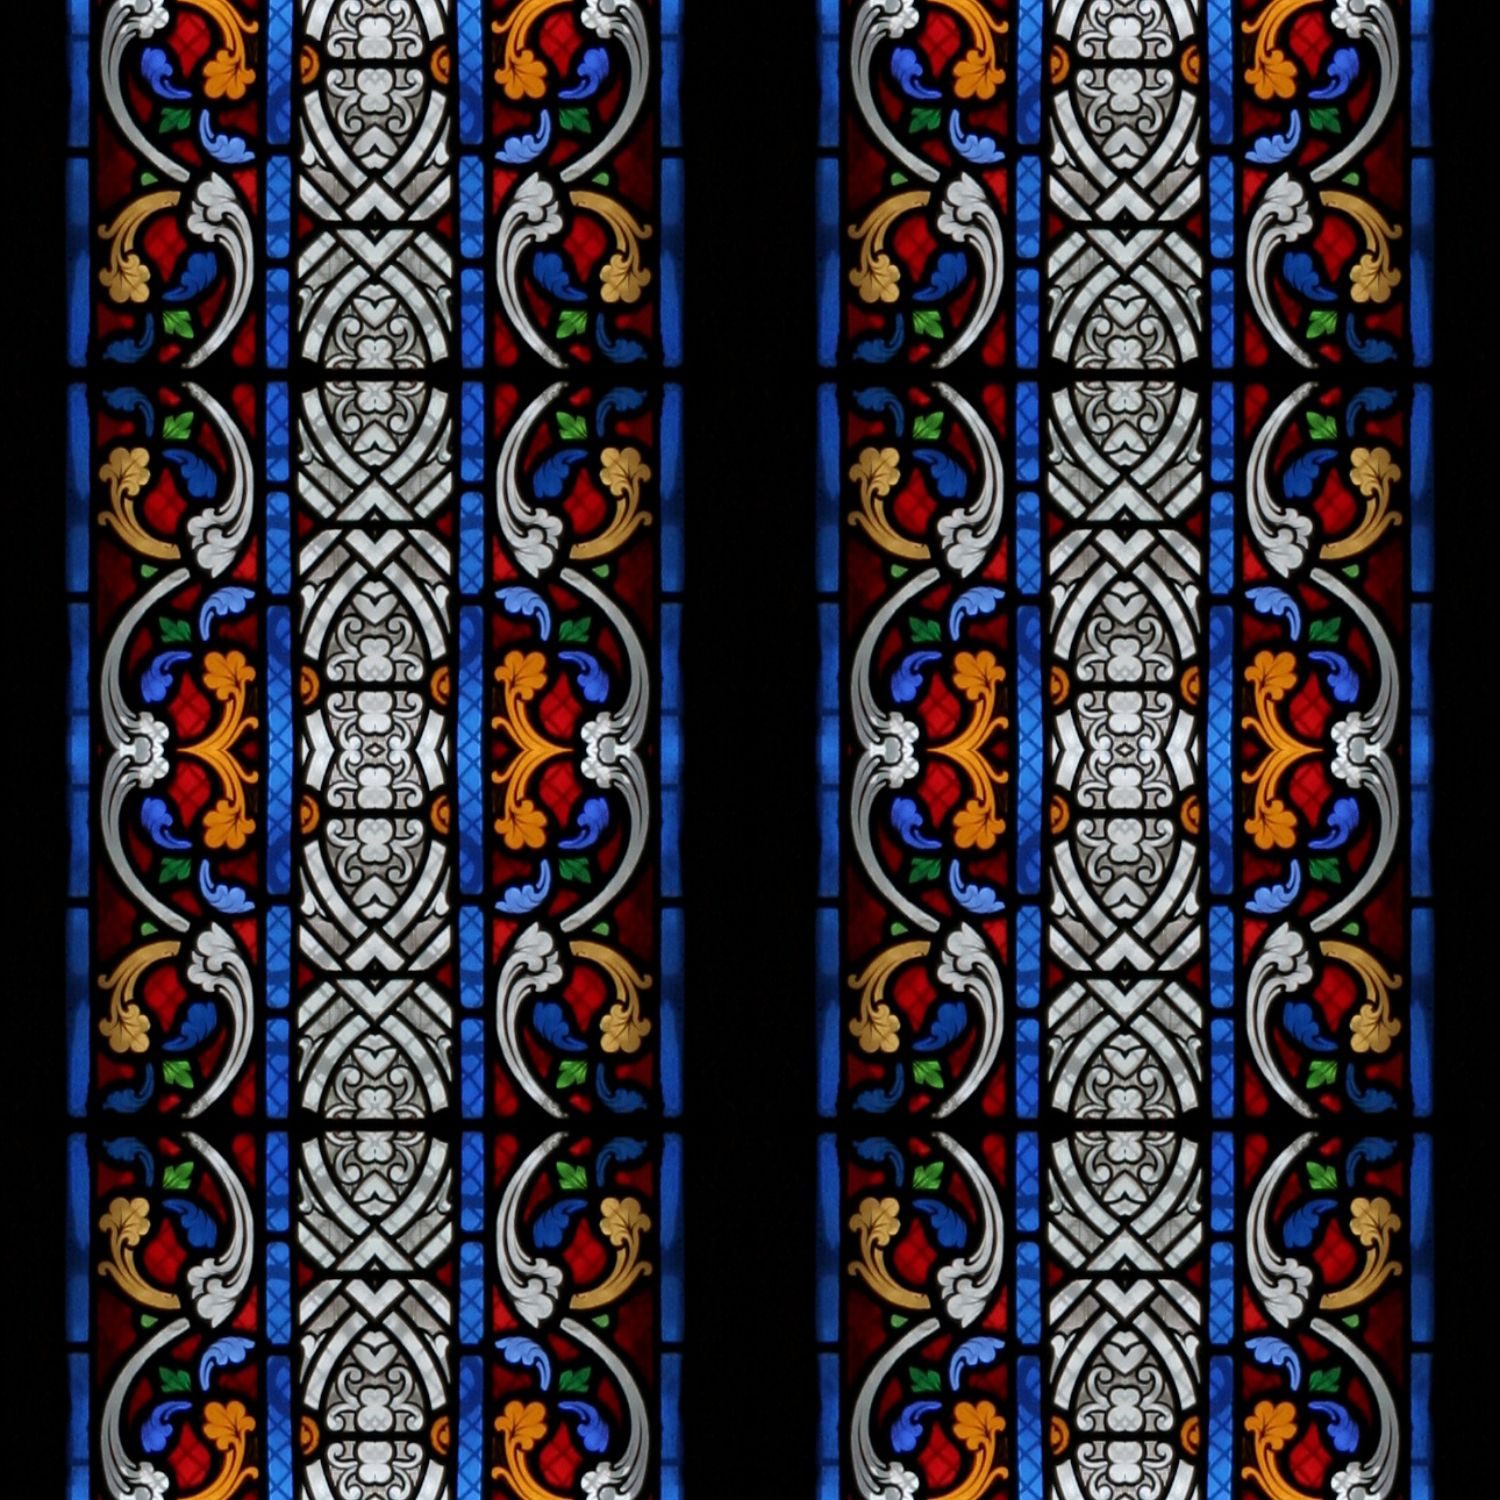 stained glass - Buscar con Google